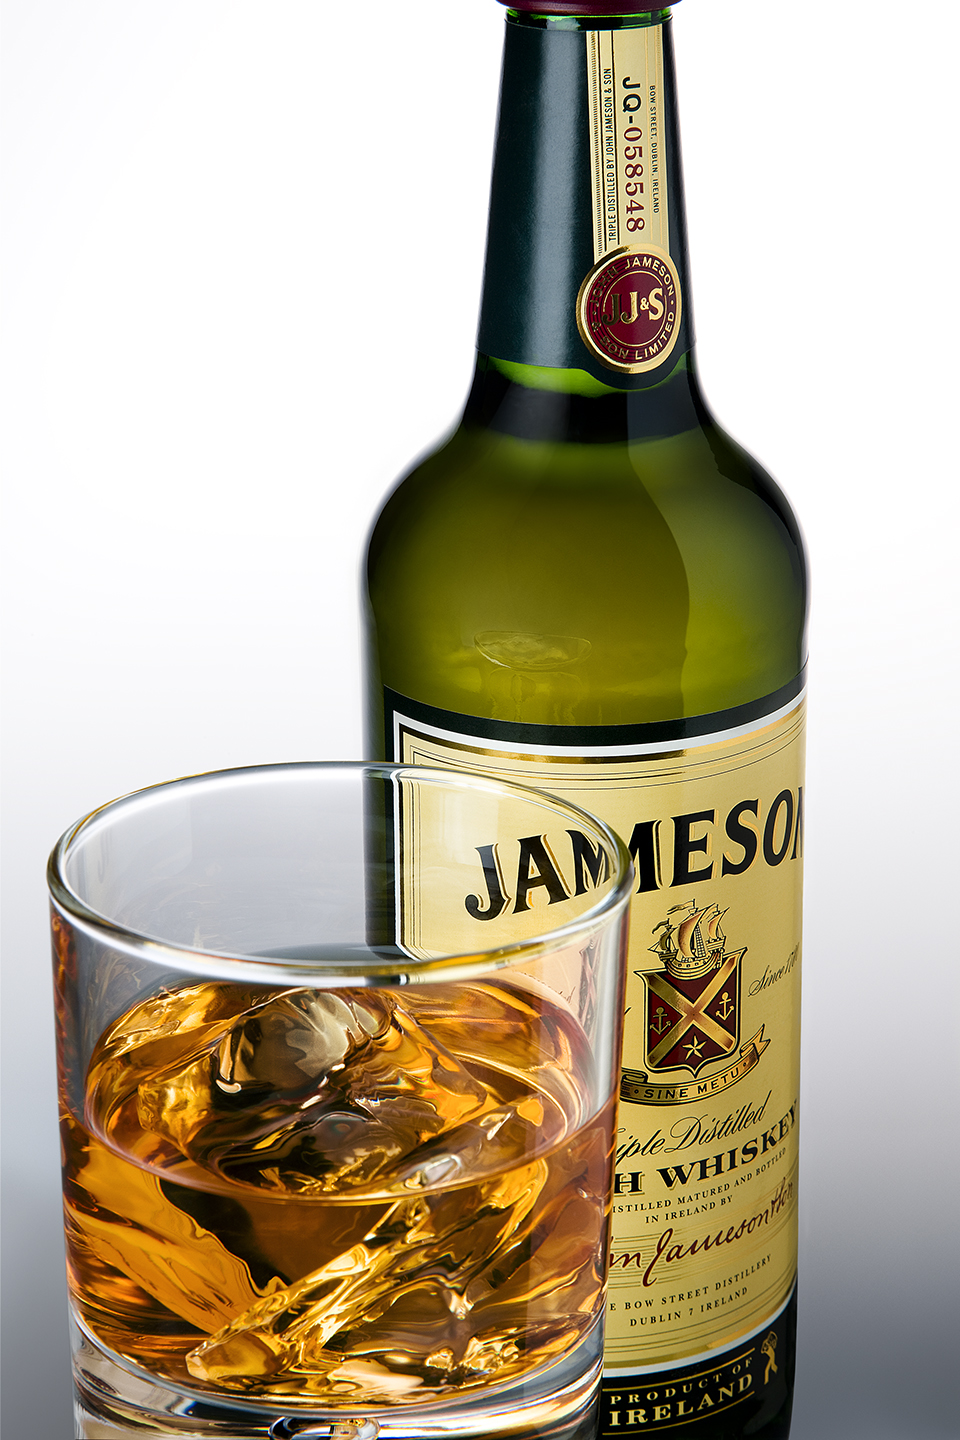 Jameson_10x15_Final_SquareSpace.jpg